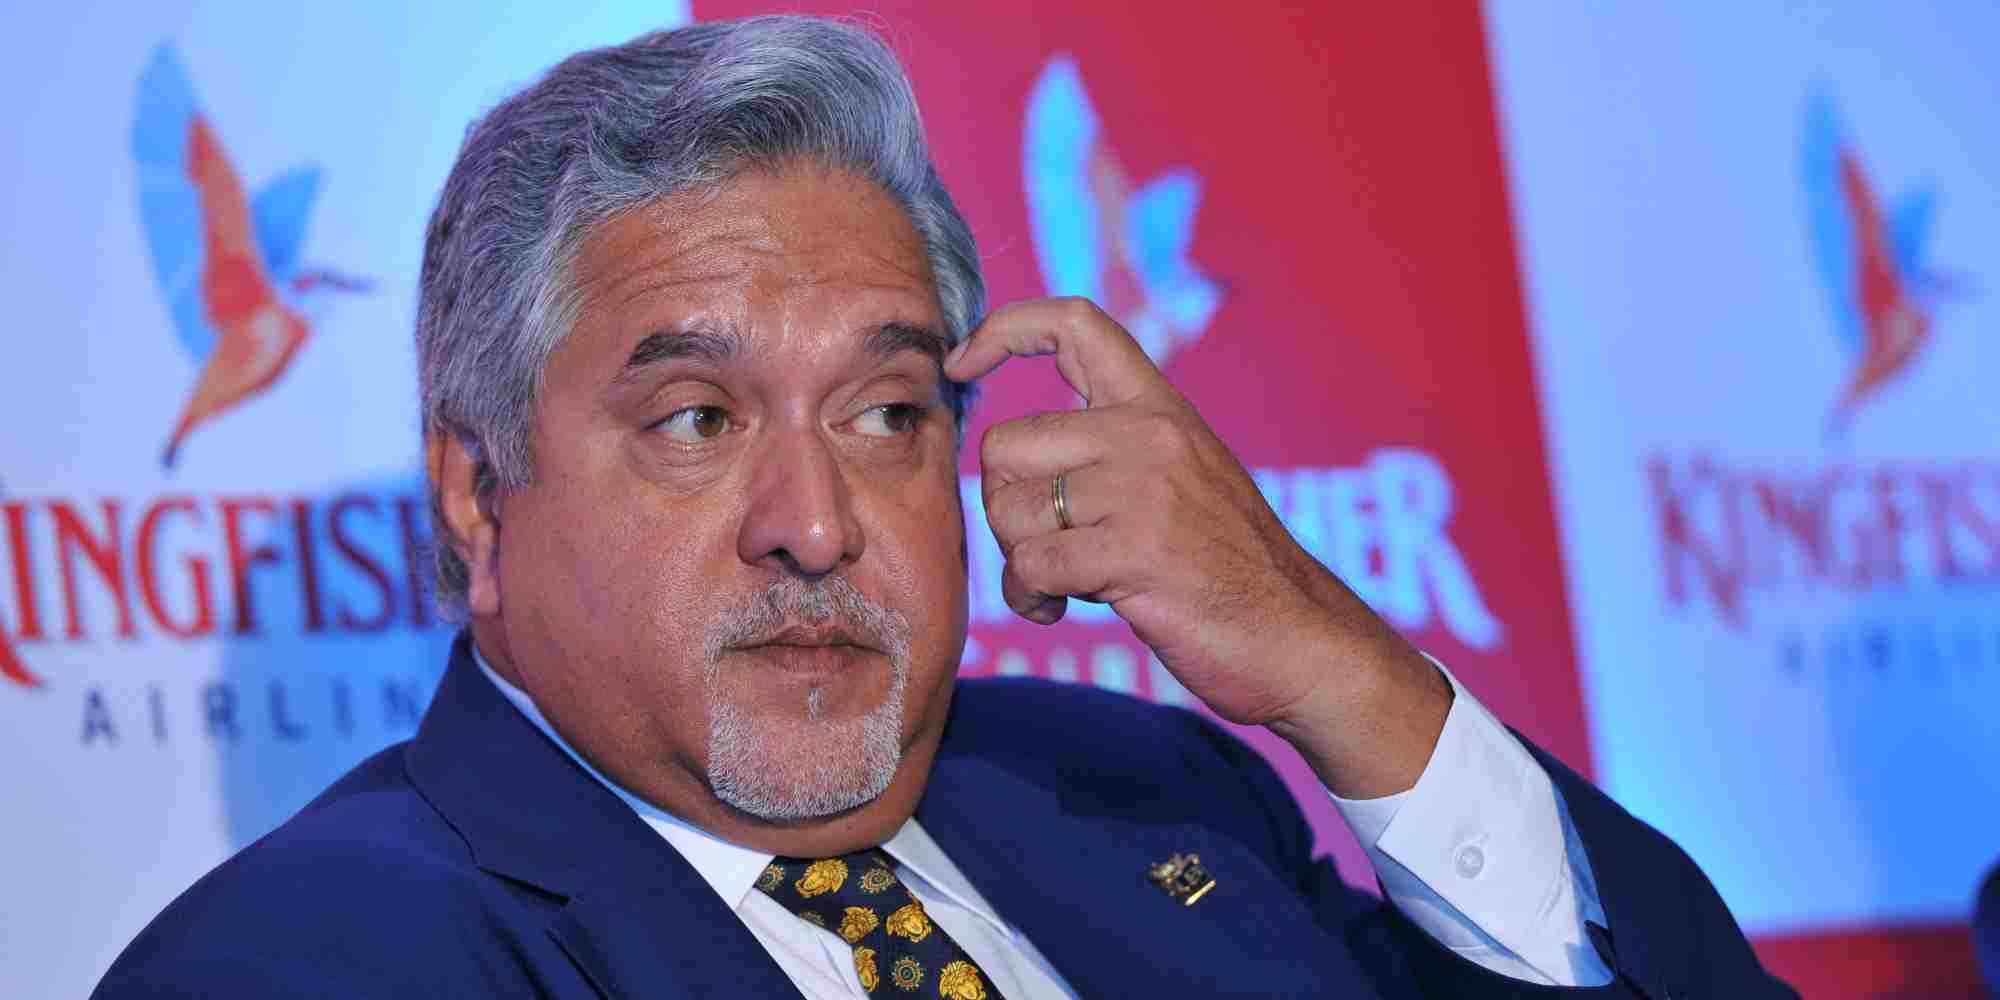 Dear Vijay Mallya, I Stand With You